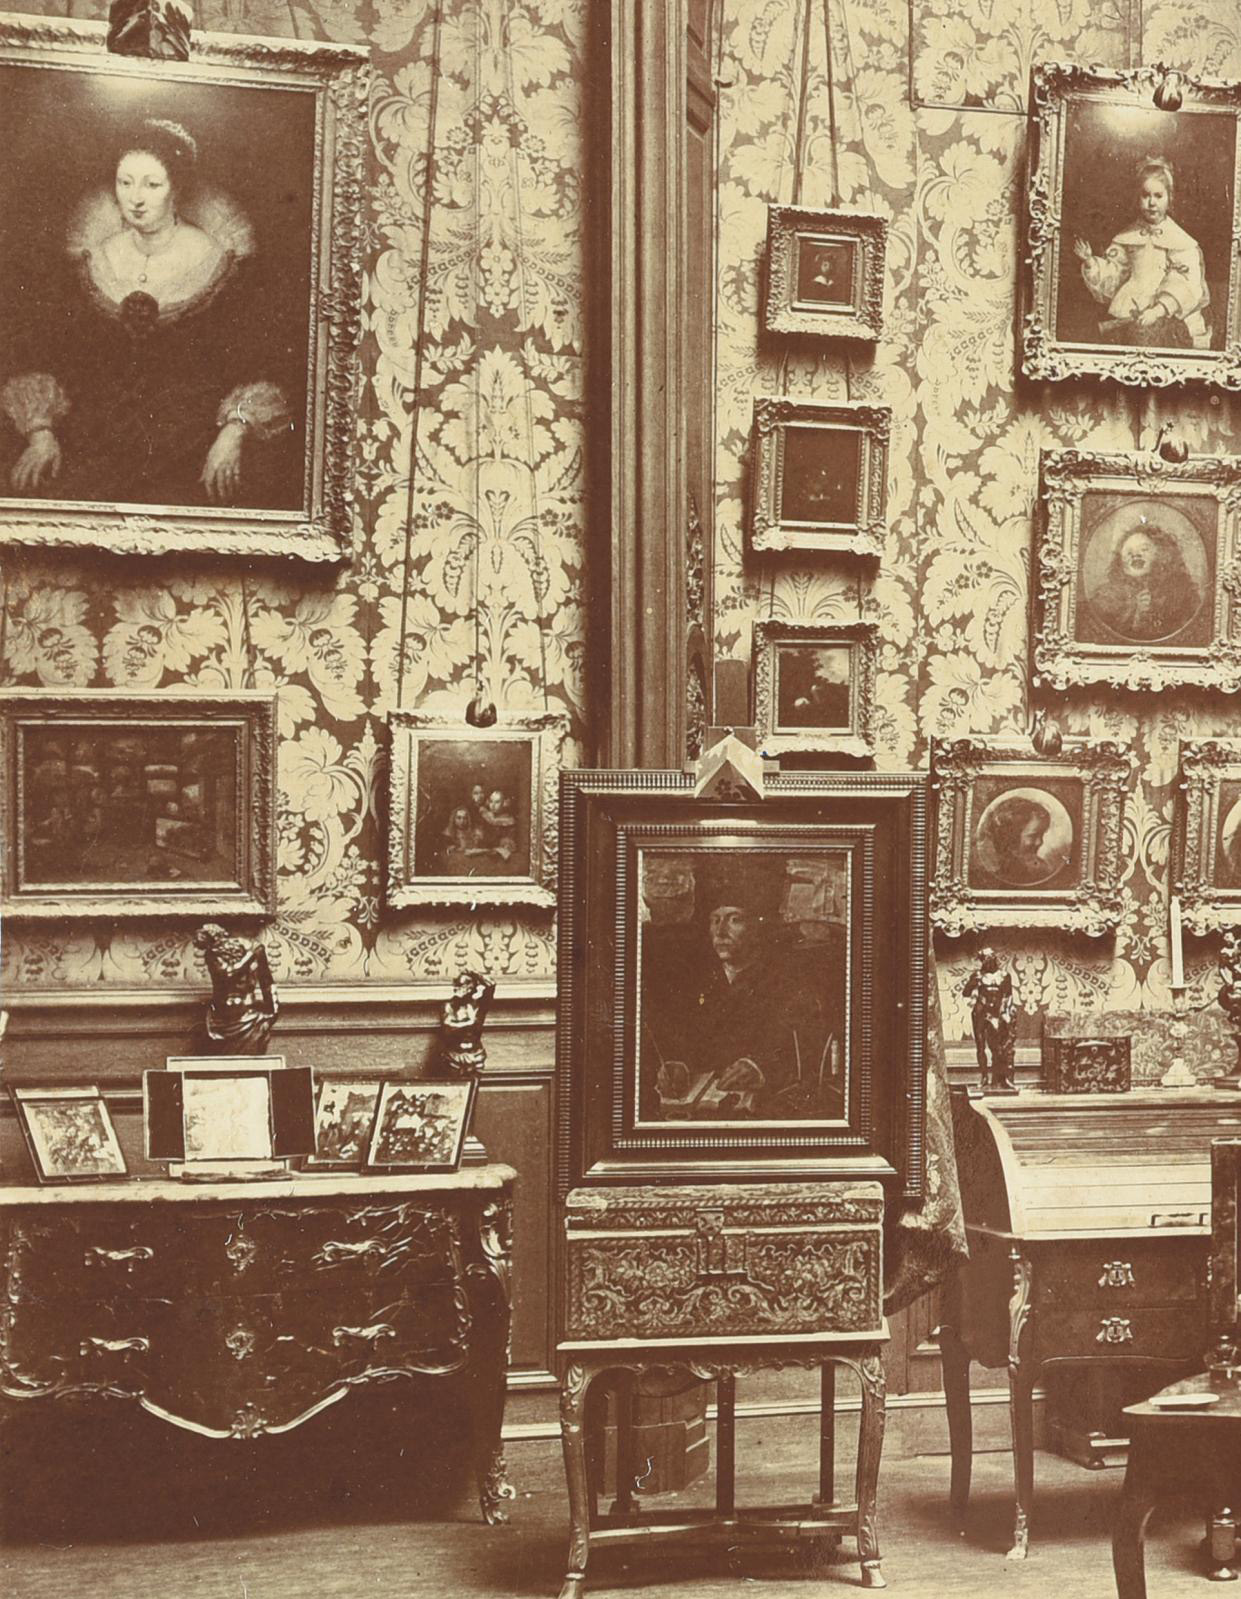 Interior of Jules Porgès' private mansion in Avenue MontaigneRights reserved